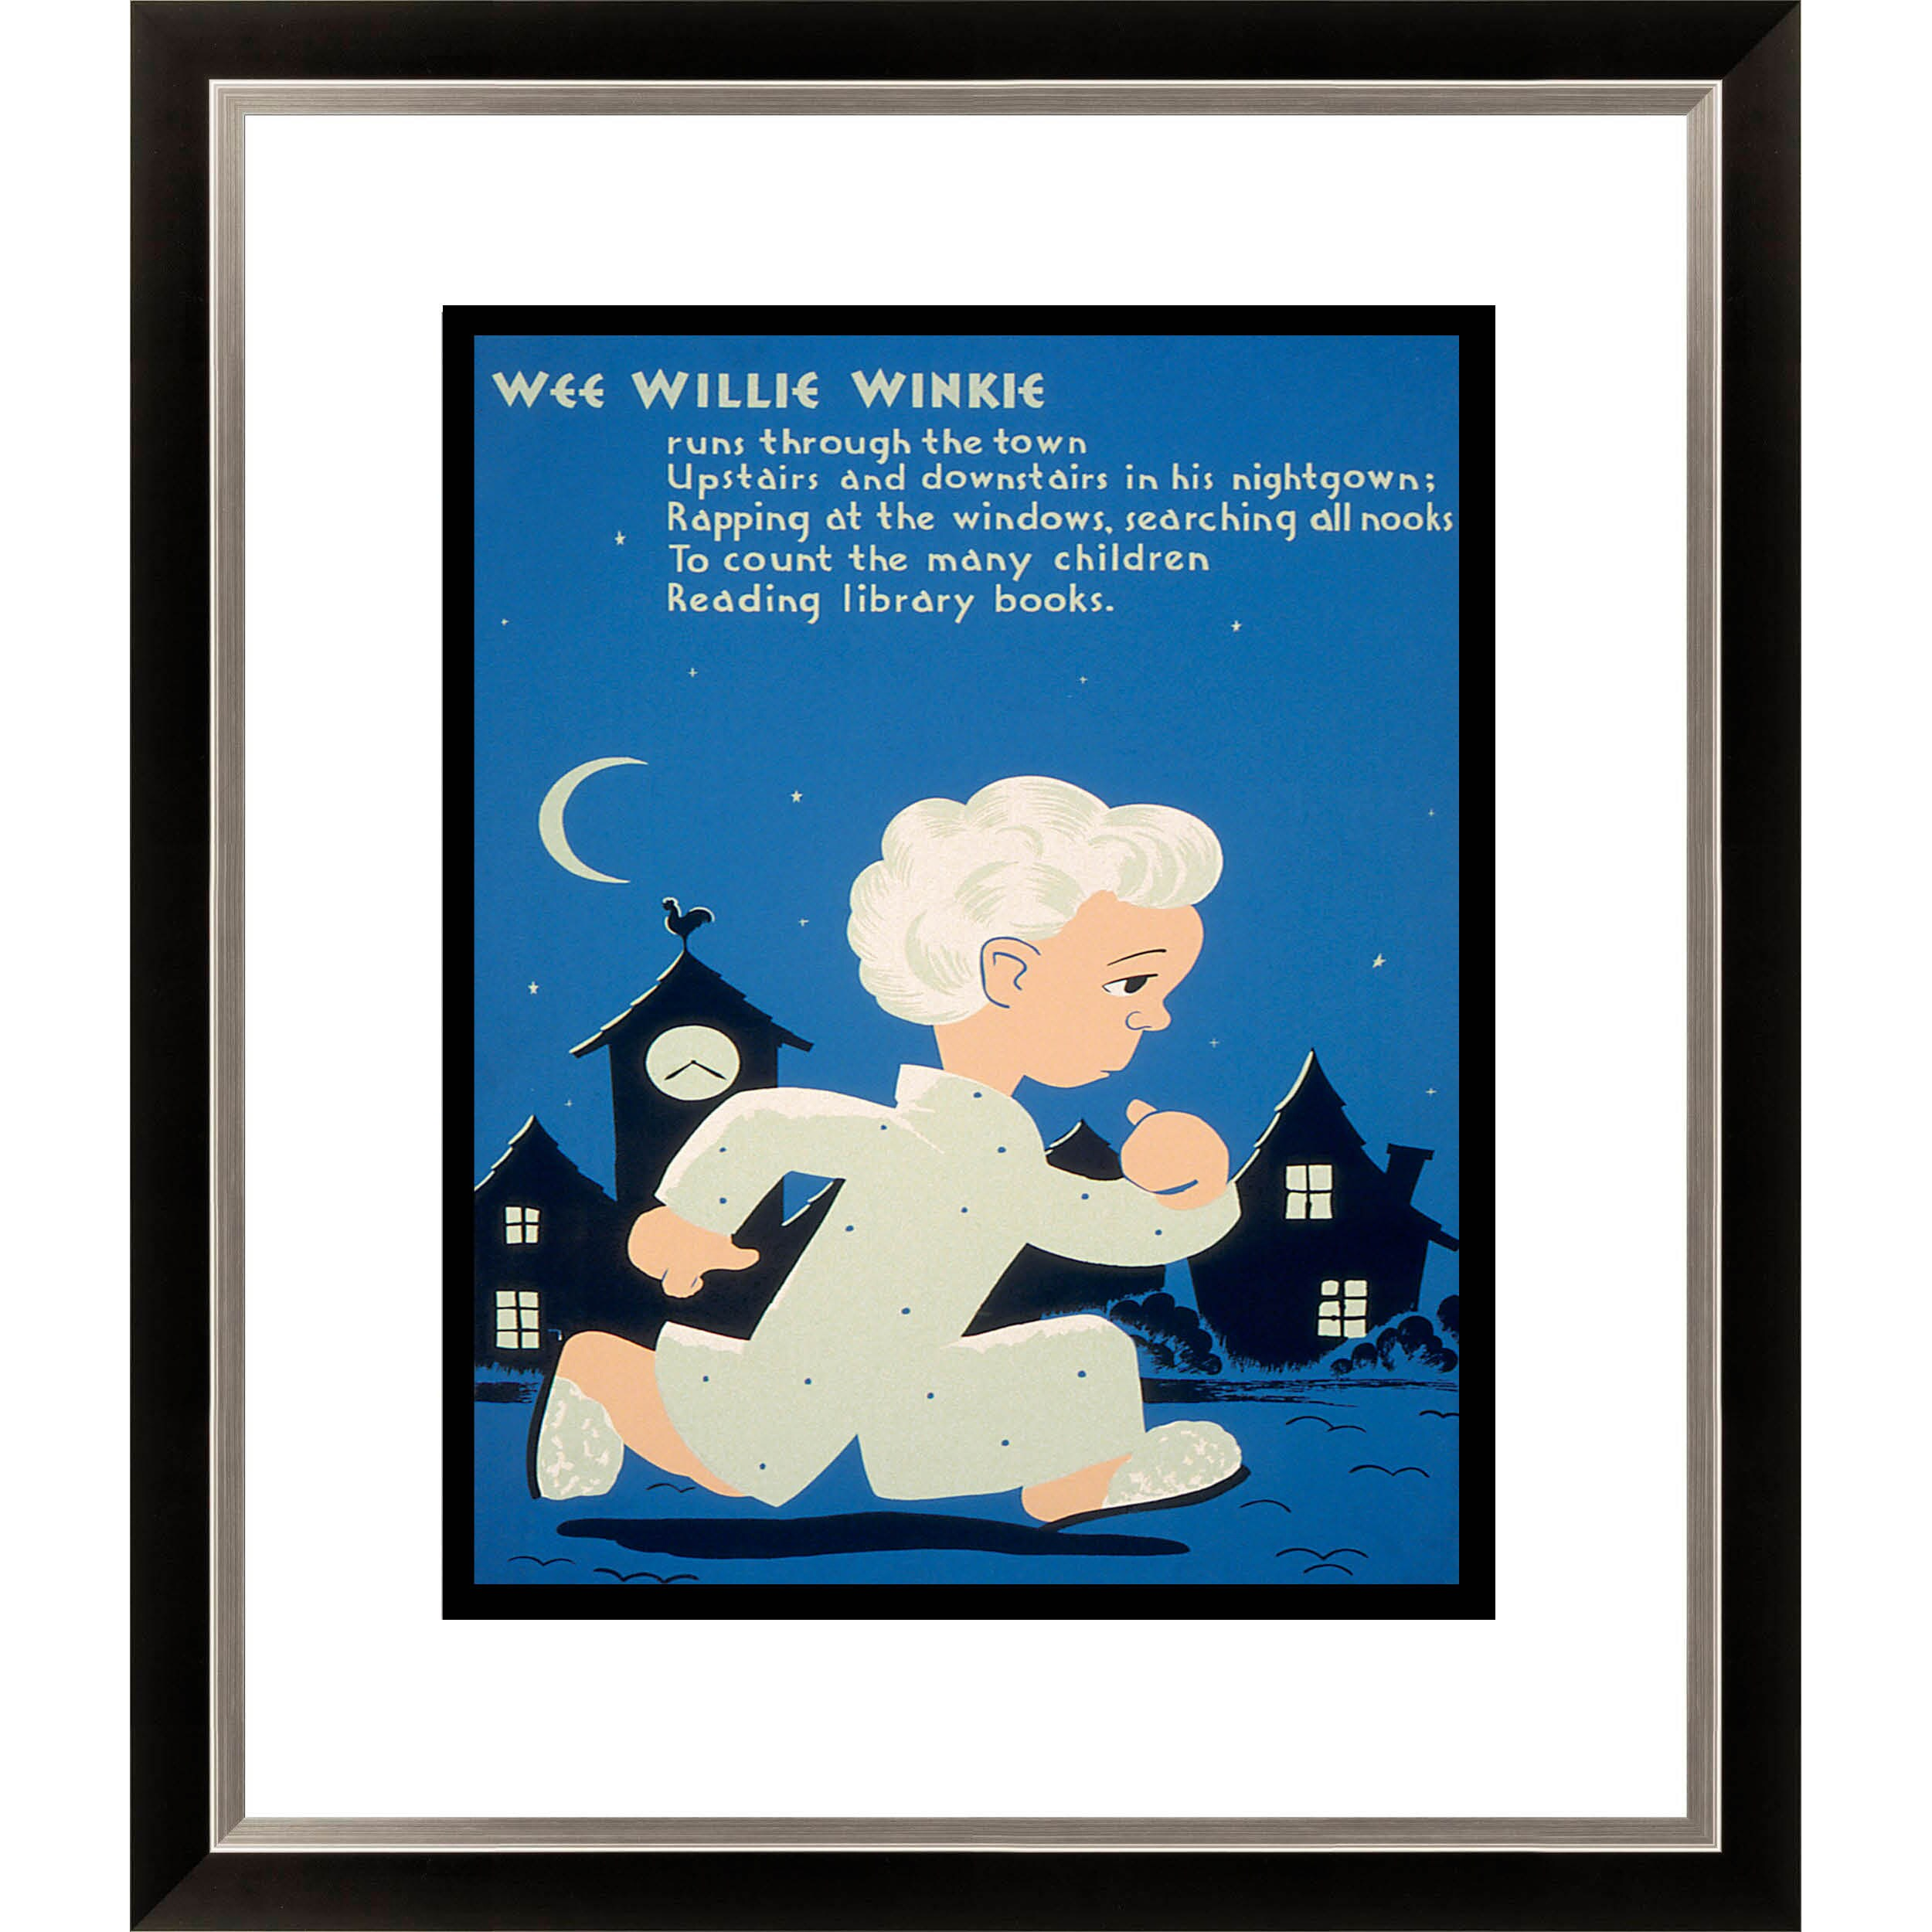 Gallery Direct 'Wee Willie Winkie Runs Through the Town' Framed Limited Edition Giclee